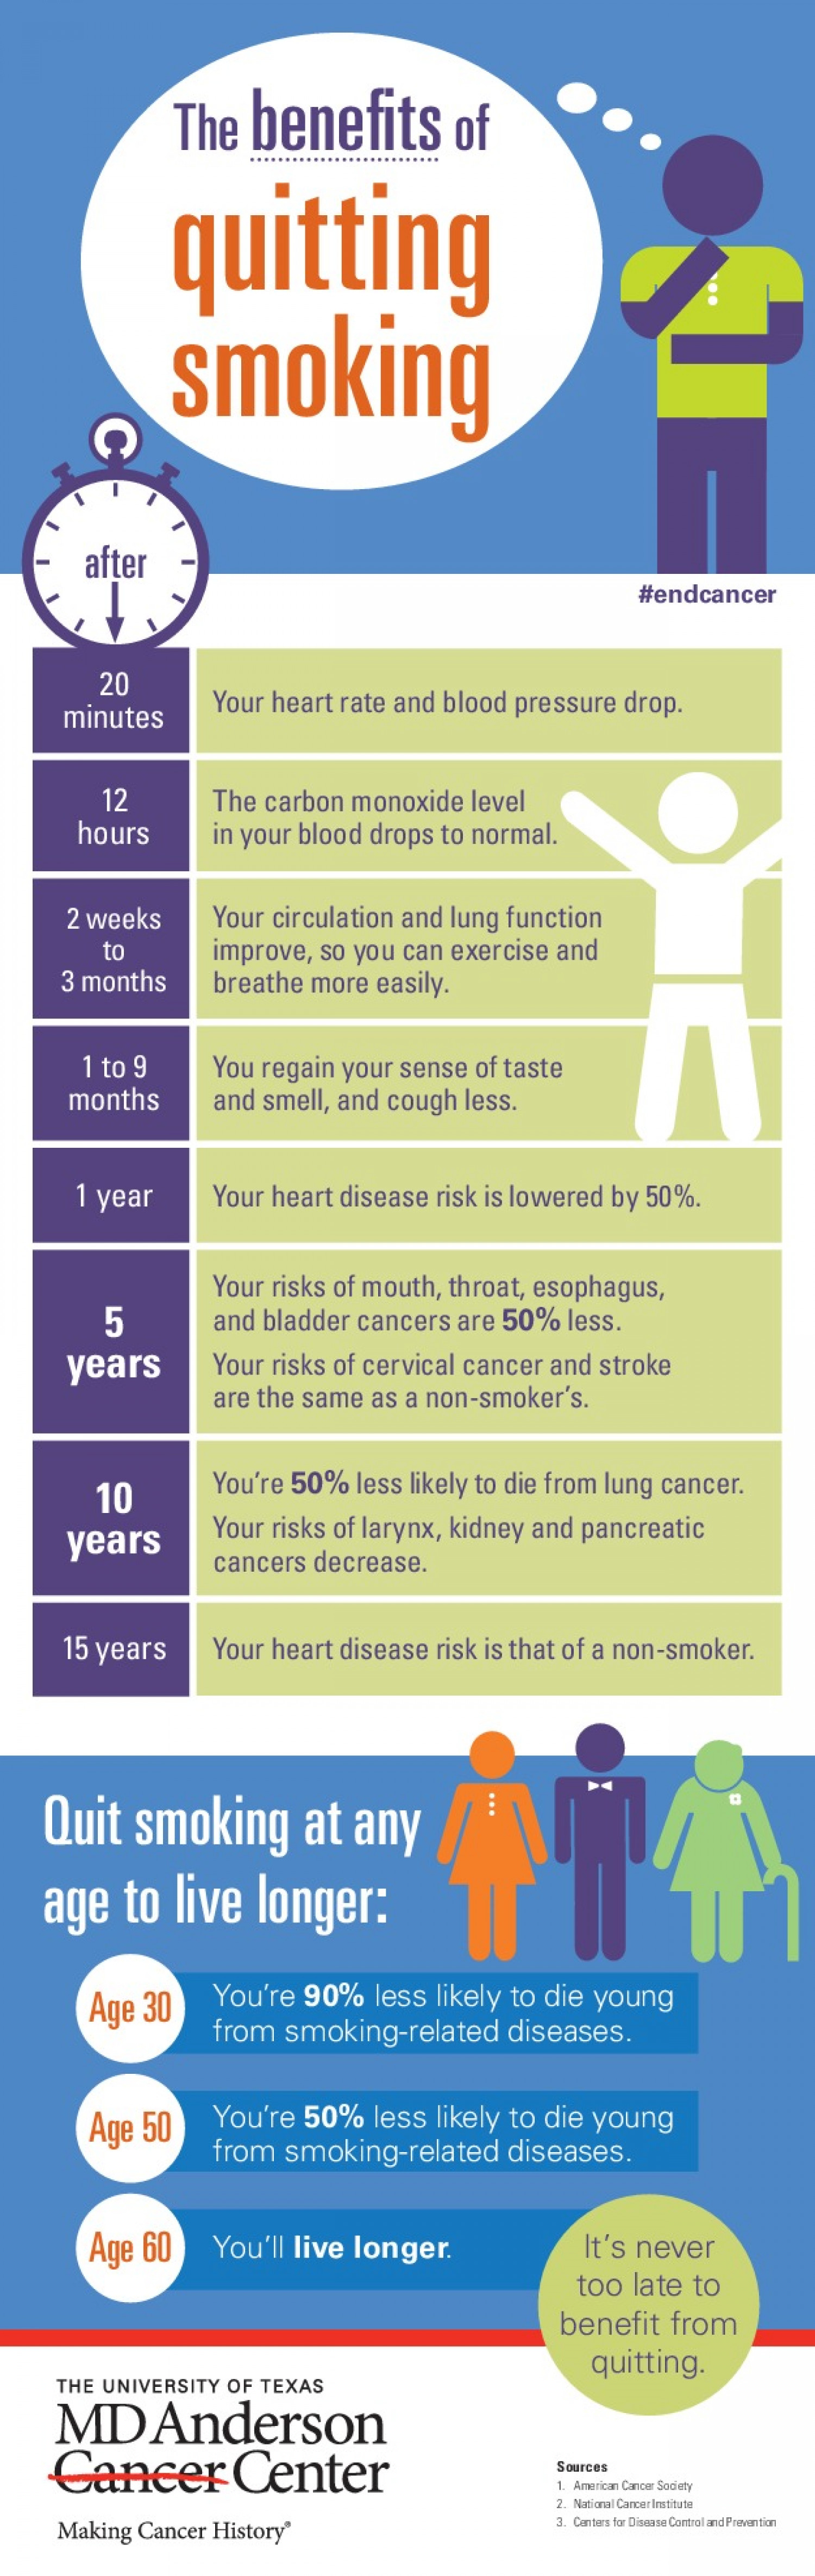 The Benefits of Quitting Smoking Infographic